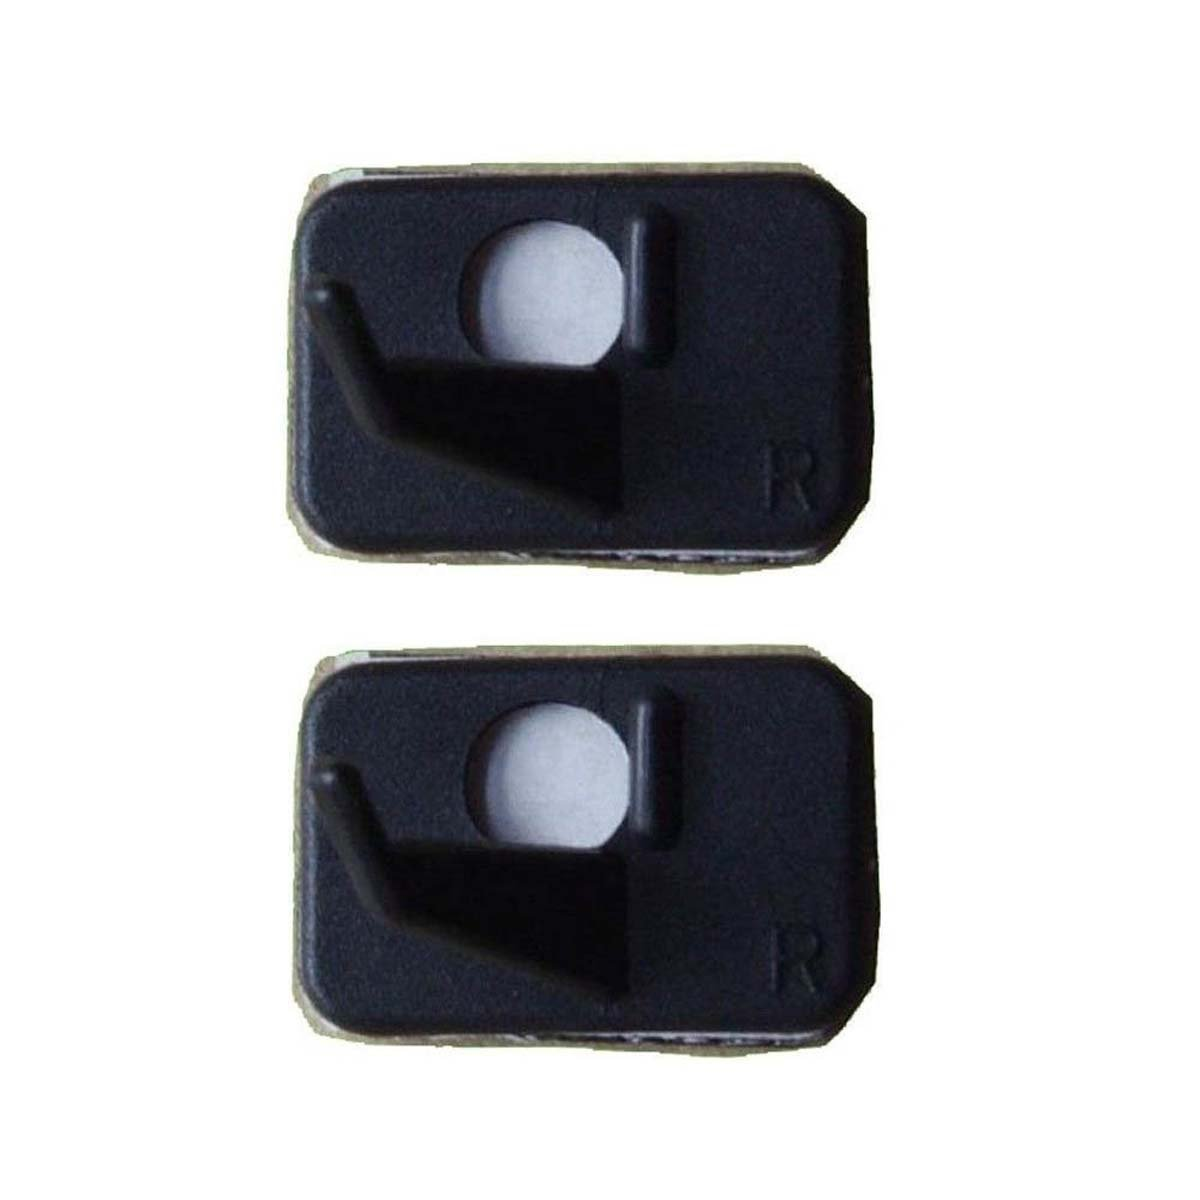 Best-selling Adhesive Archery Arrow Rest Sharp shooter Arrow Rest For Recurve Bow Right Hand 2pack